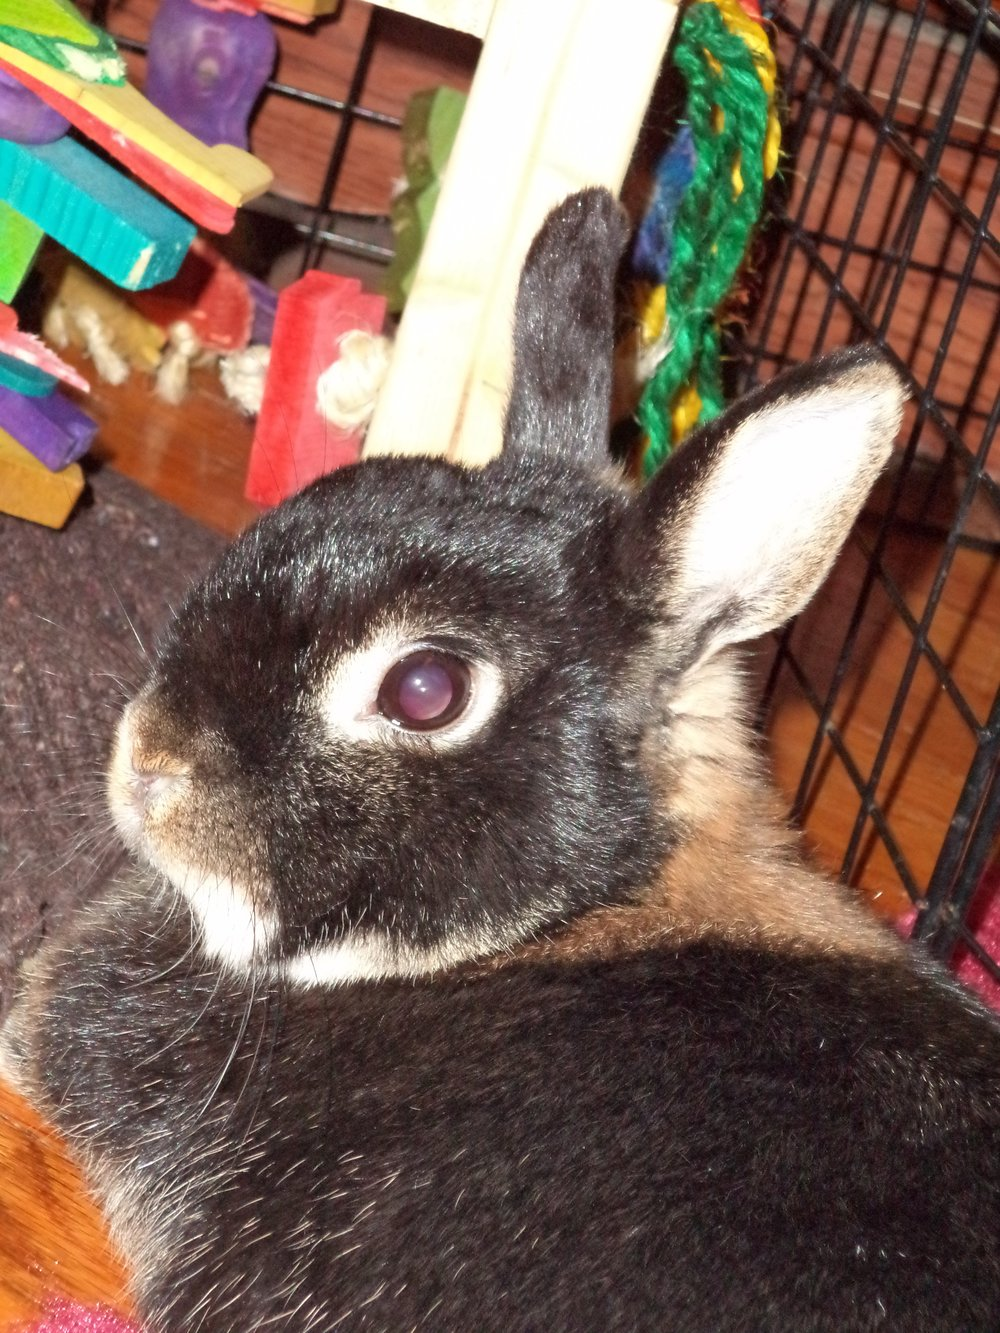 Guinness Leodegrance Allgeyer  2018  //  Guinness Leodegrance Allgeyer died peacefully on January 19th, 2018.  She joins her friends Tinsel and ChooChoo, and is survived by her two best friends, Snowball and Luna, and her comrade Oatmeal.  Guinness was a bunny of love who enjoyed petting from hoomans and snuggling with her siblings in a bunny sandwich. When she wanted pets, she would look at me until I petted her, and then she would tooth purr and sometimes melt.    Guinness was born in 2008 and spent the first four years of her life as a hutch bunny.  In 2012, she moved to her forever home and was introduced to her new brother Snowball. Snowball and Guinness took a few years to get used to each other before becoming best friends, and then they met Luna, who insisted on being their best friend immediately.  From then on, they were Team Bunny, and they would all cuddle together underneath furniture and groom each other. Guinness enjoyed getting pets, being the top bunny, eating lots of food, inspecting humans, climbing on the couch, and relaxing. Guinness was a bunny who was made entirely out of fur and calmness and snuggles and love.  She will always be missed by everyone who ever met her.